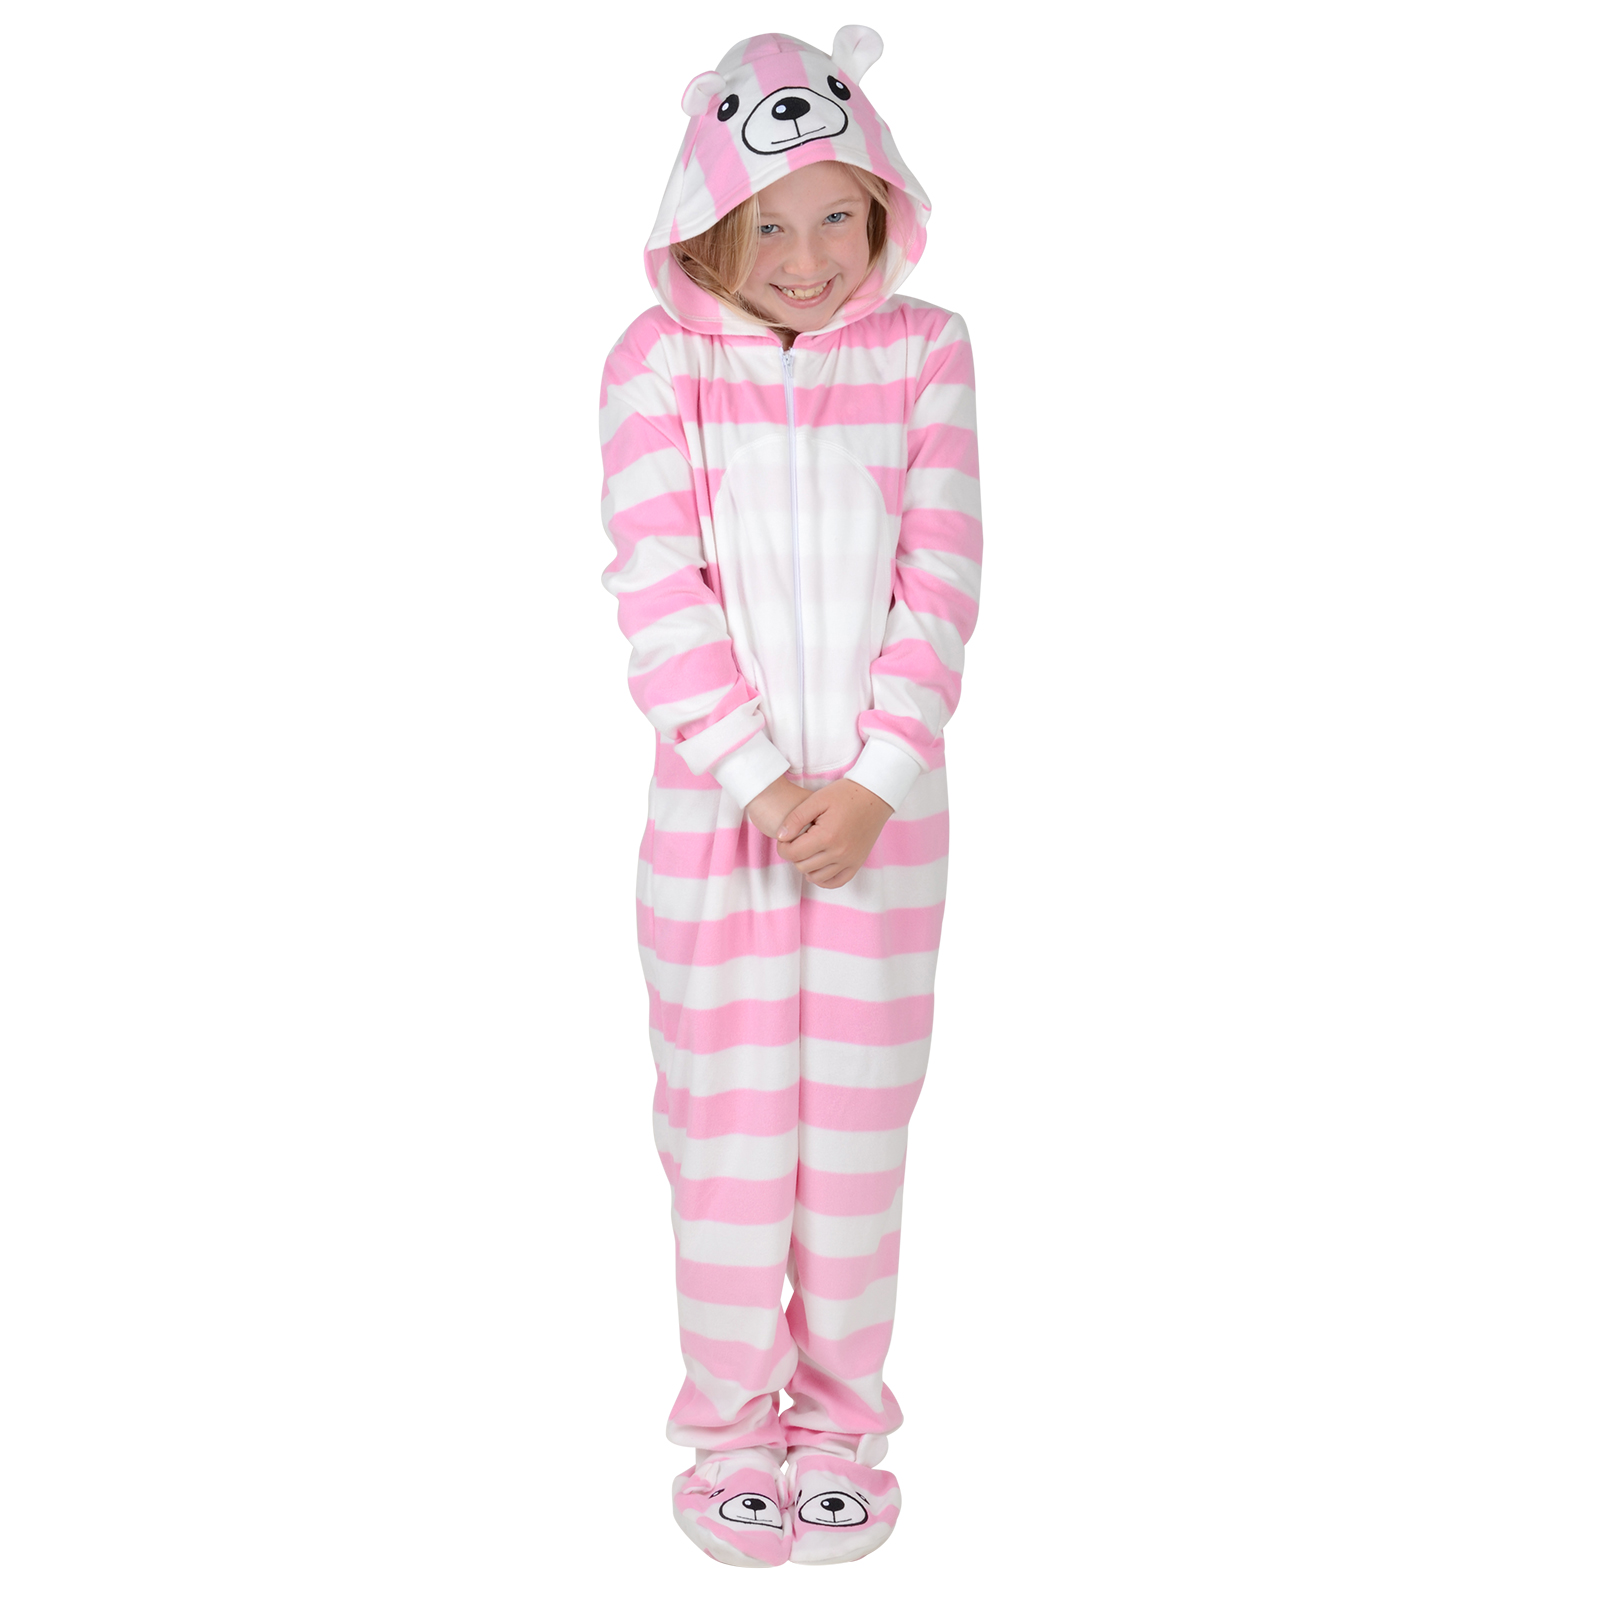 Women's Adult Onesie Pajamas. Showing 48 of results that match your query. Search Product Result. Product - Minons women's and women's plus sleepwear adult costume union suit pajama (xs-3x) Product - Womens Leopard Print Footed Pajamas Micro Fleece Zip Up Onesie Footie Pajamas.